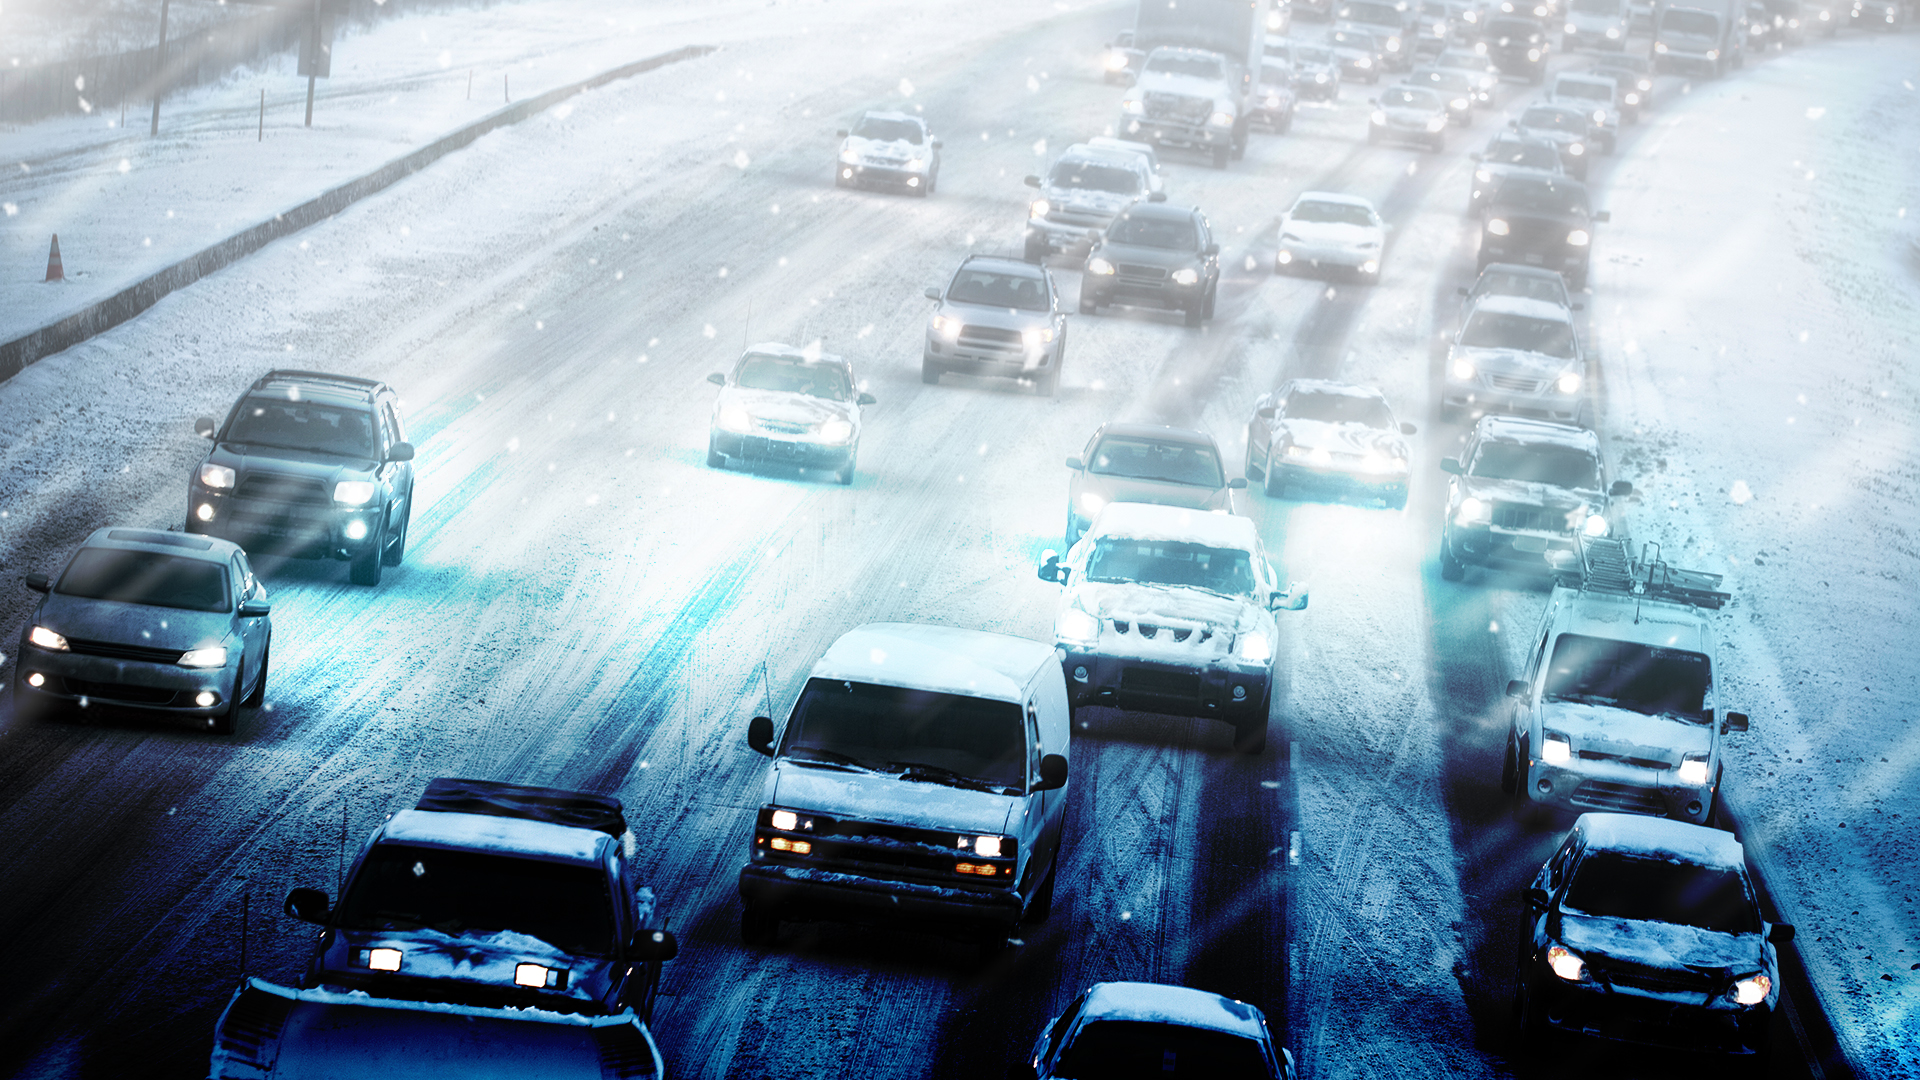 generic image of cars on highway in snow